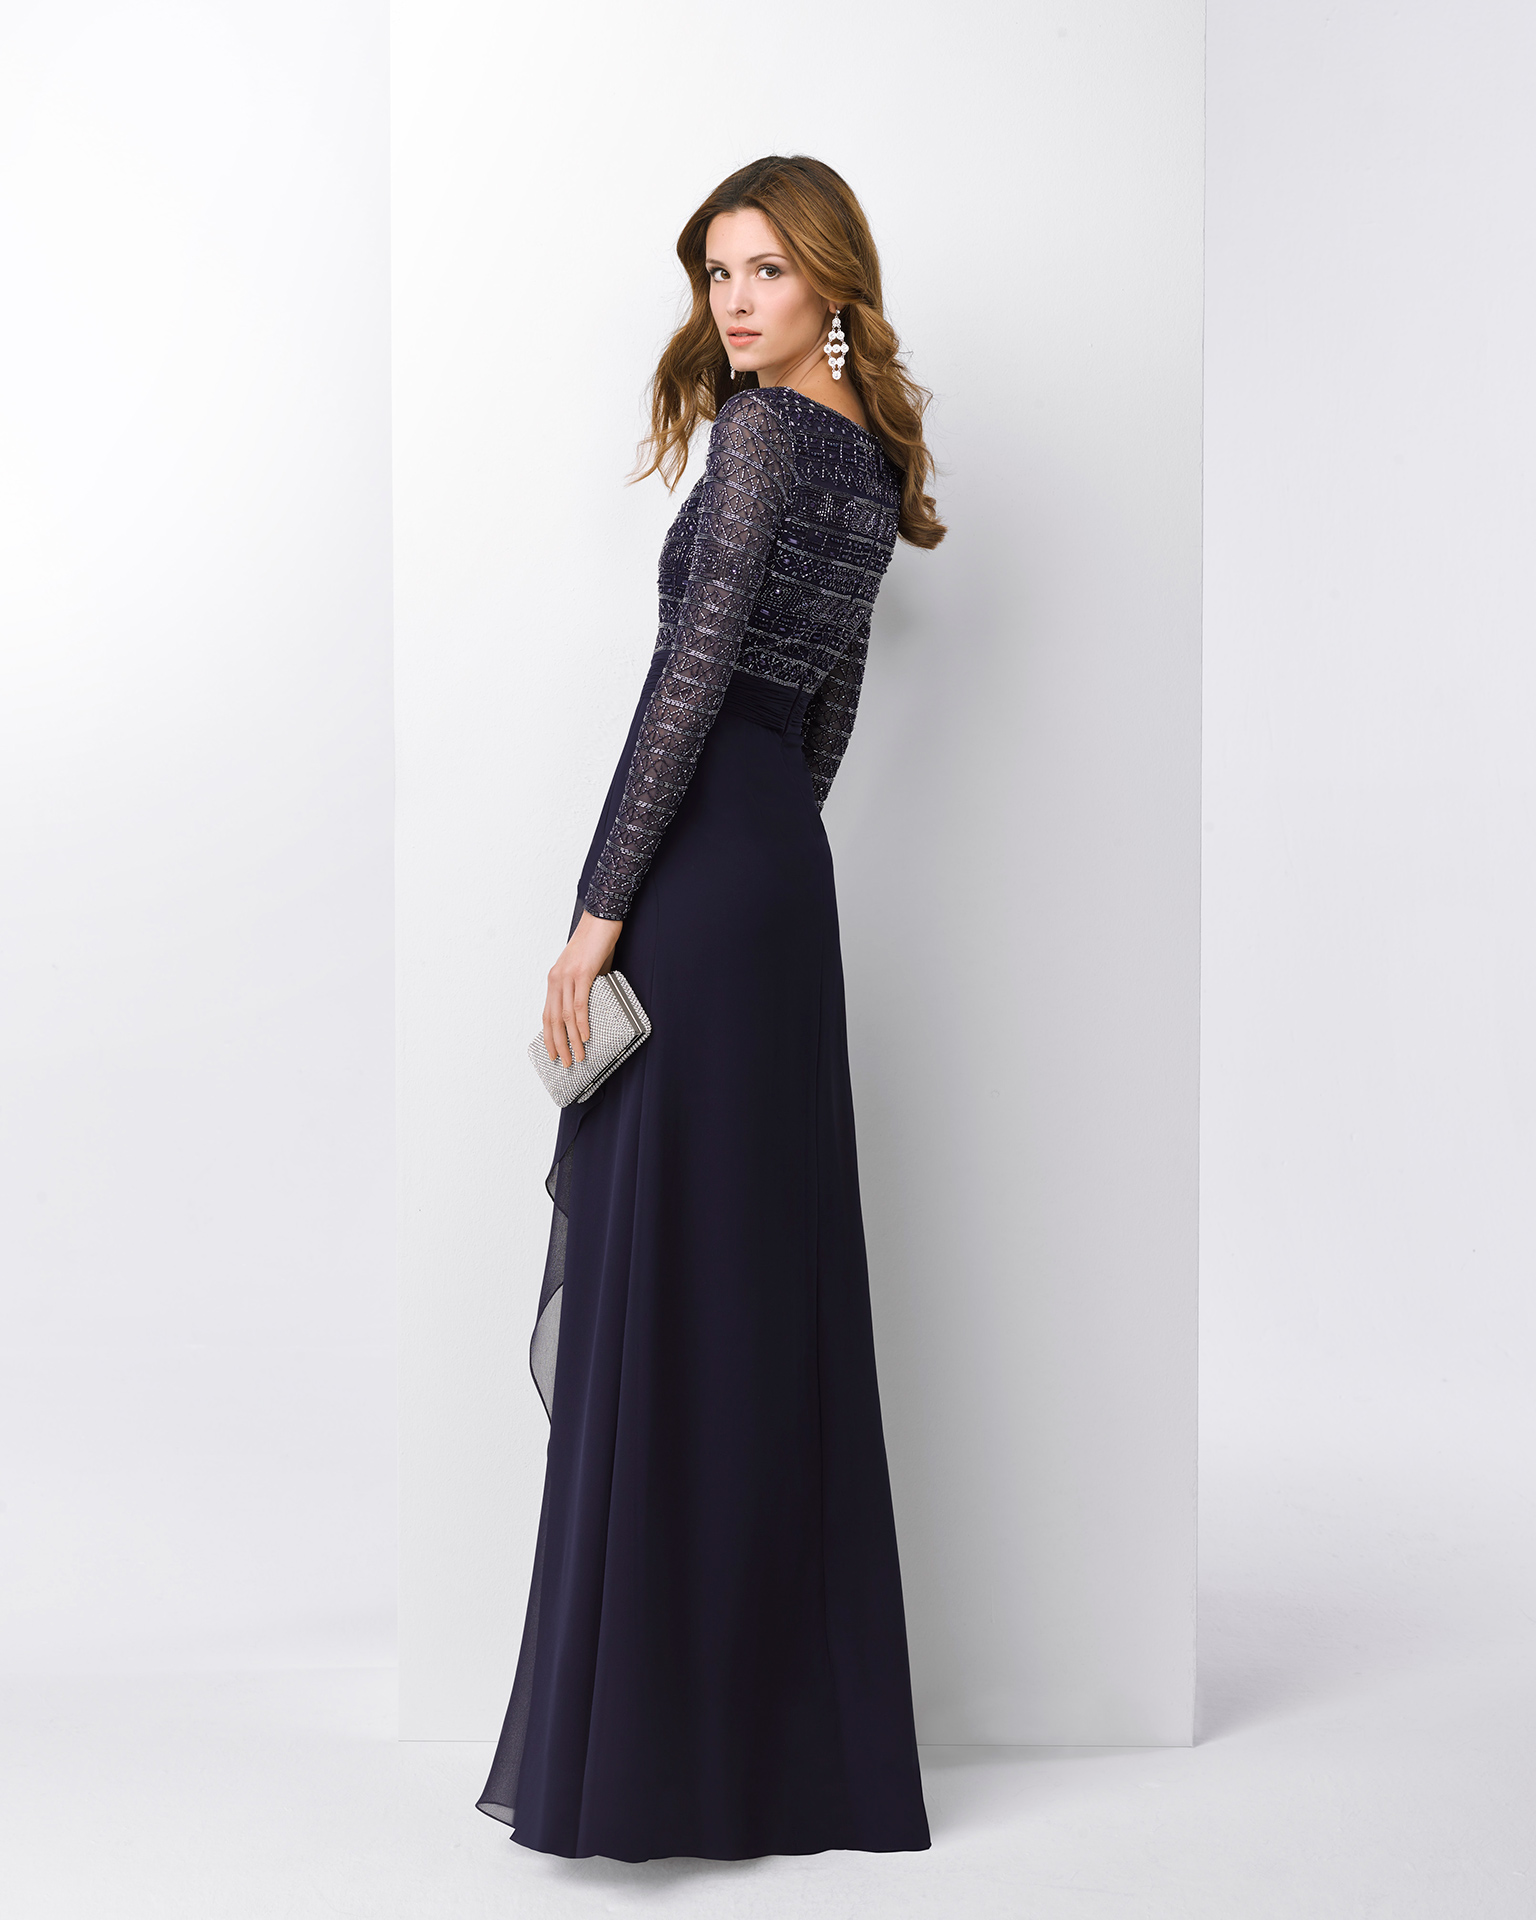 Chiffon cocktail dress with beaded bodice, bateau neckline and long sleeves. Available in silver and navy blue. 2018 FIESTA AIRE BARCELONA Collection.